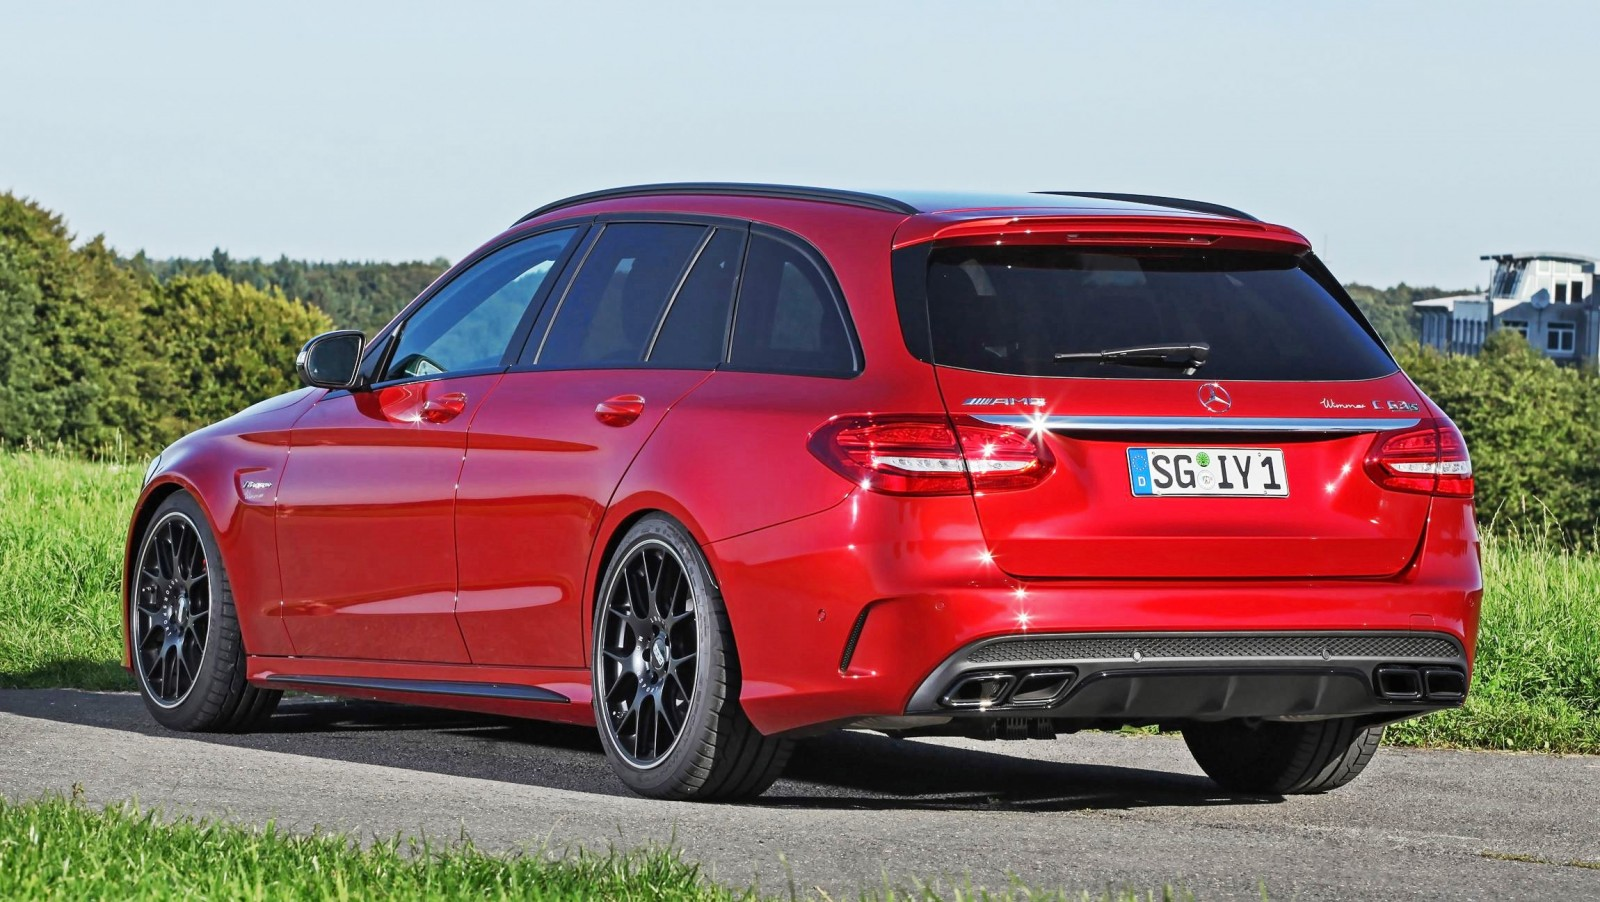 2016 mercedes amg c63 s wimmer. Black Bedroom Furniture Sets. Home Design Ideas